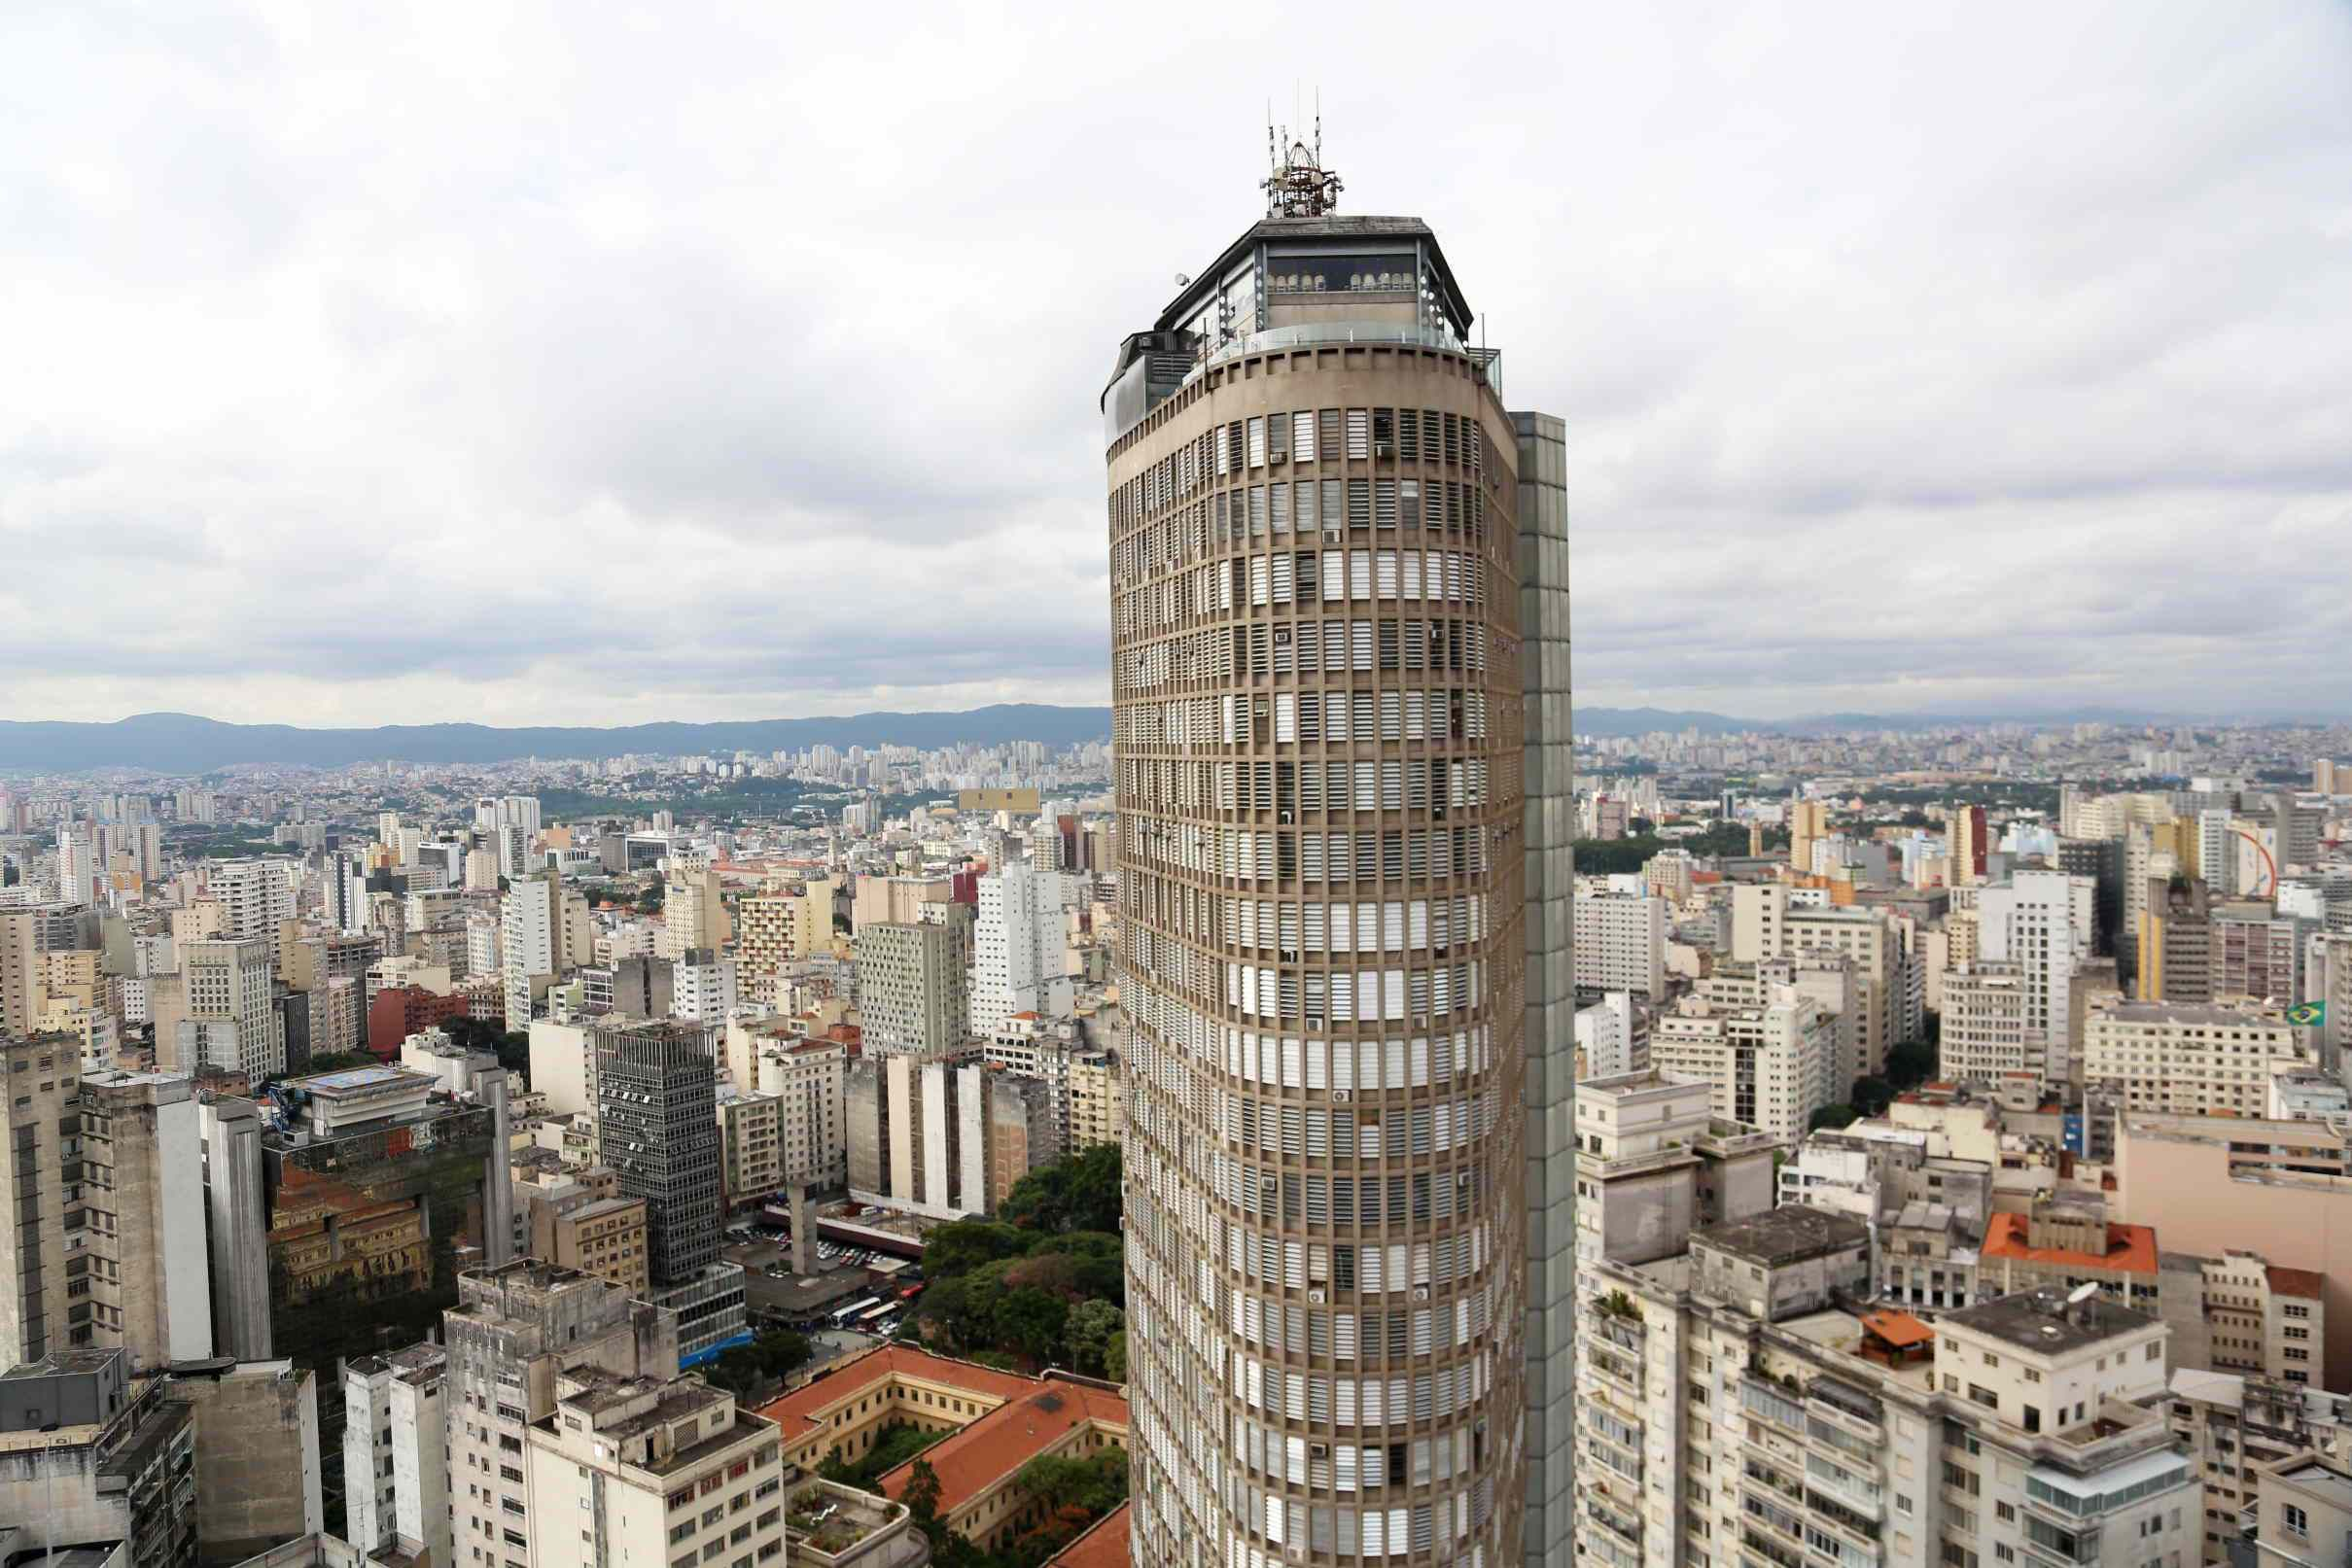 International Style: Edifício Itália